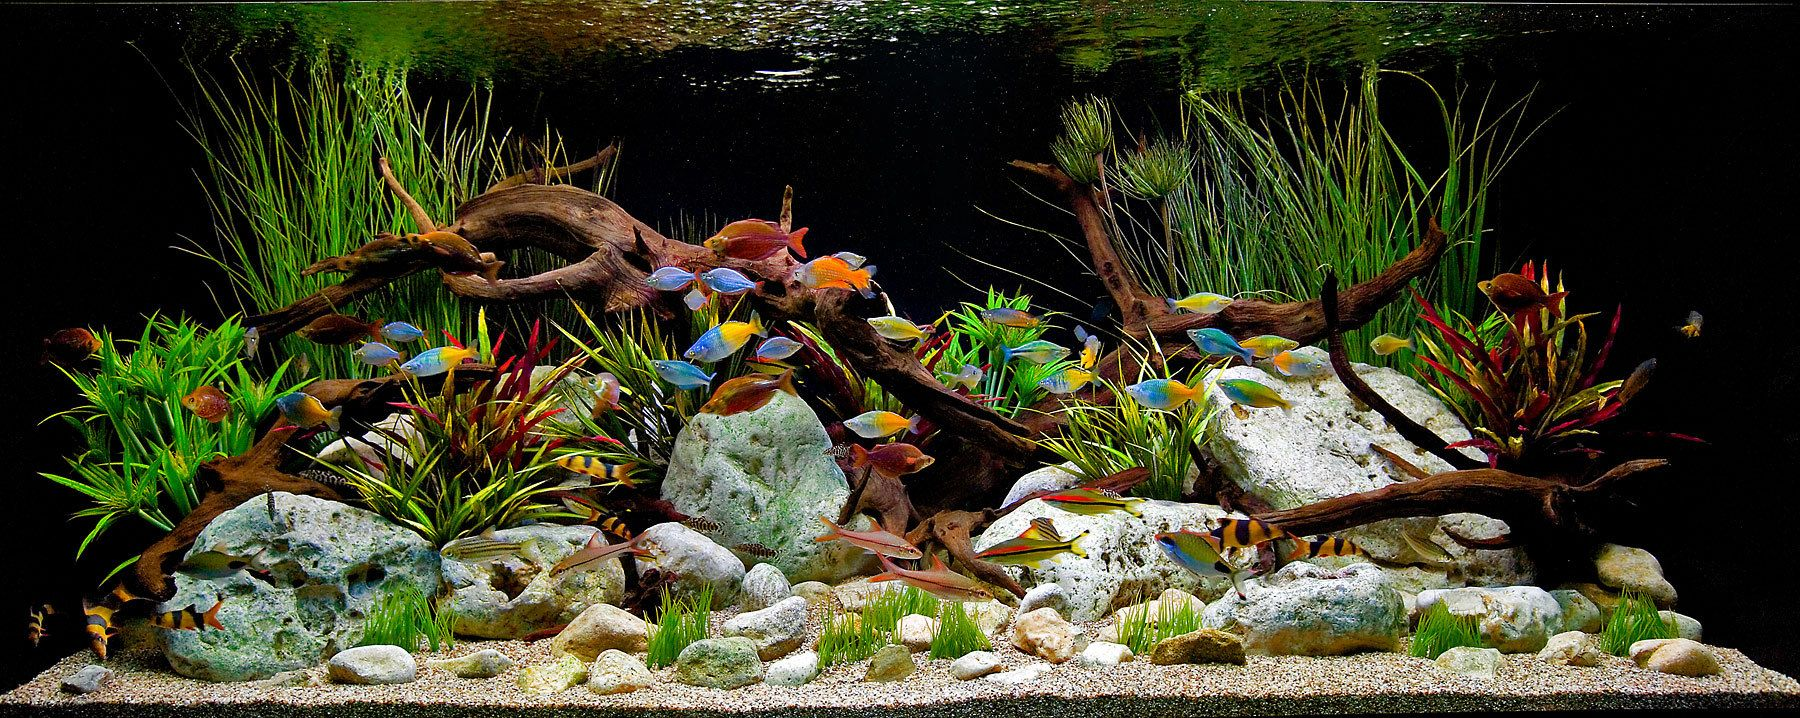 High Quality Aquarium Design Group   A Classic Decorative Freshwater Aquascape Witrh  Driftwood And Stones